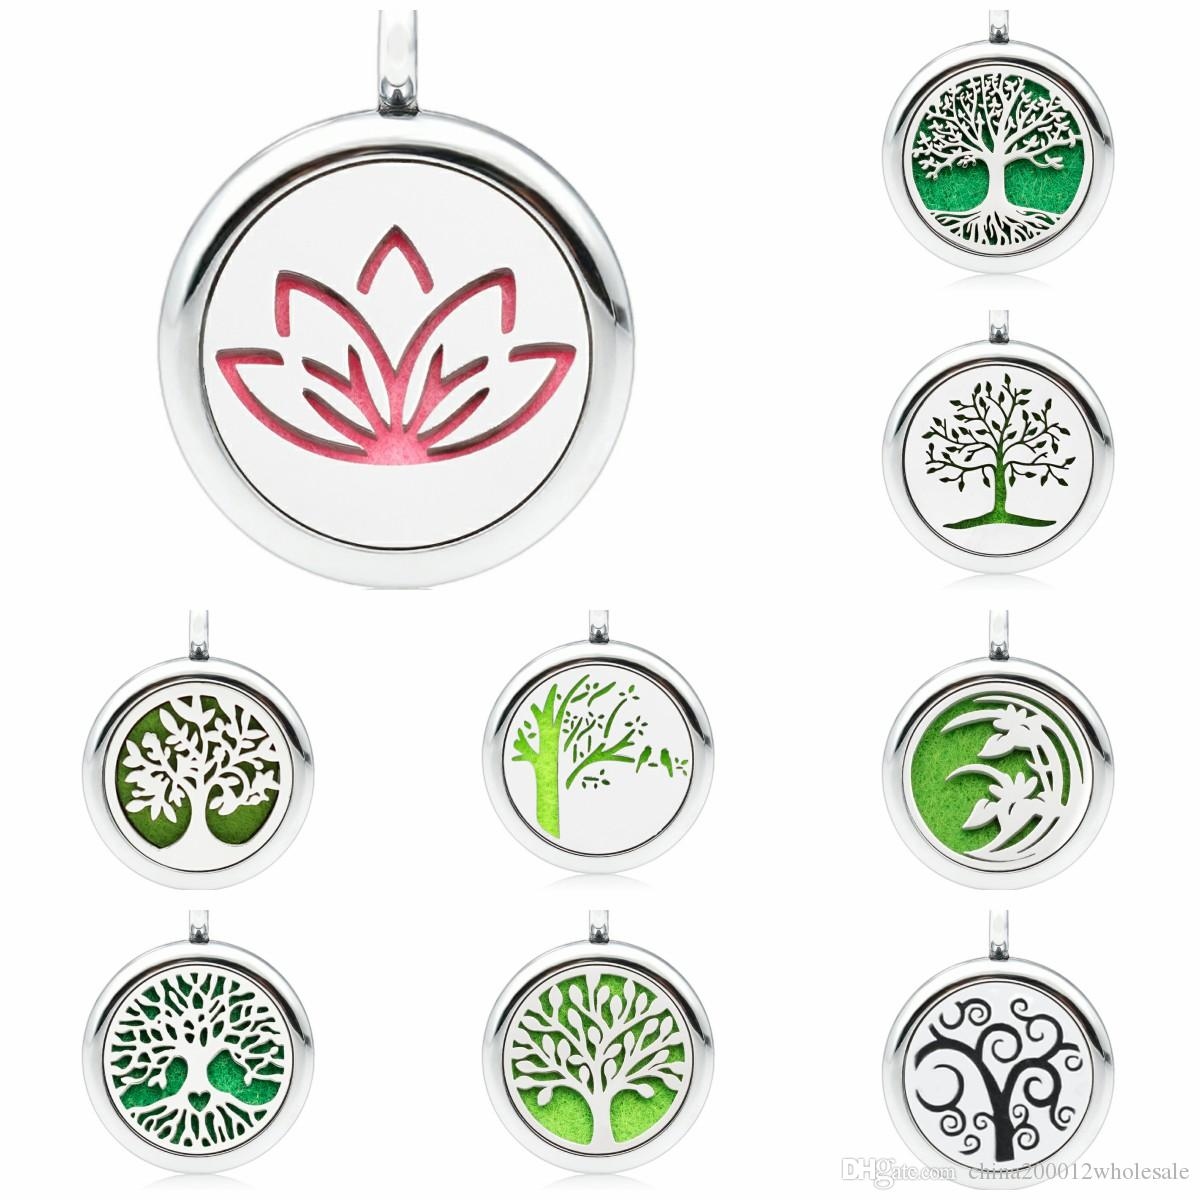 2018 tree of life lotus flower tree perfume essential oil diffuser 2018 tree of life lotus flower tree perfume essential oil diffuser locket 25mm hollow locket with 1 pad randomly as gift no chain from china200012wholesale izmirmasajfo